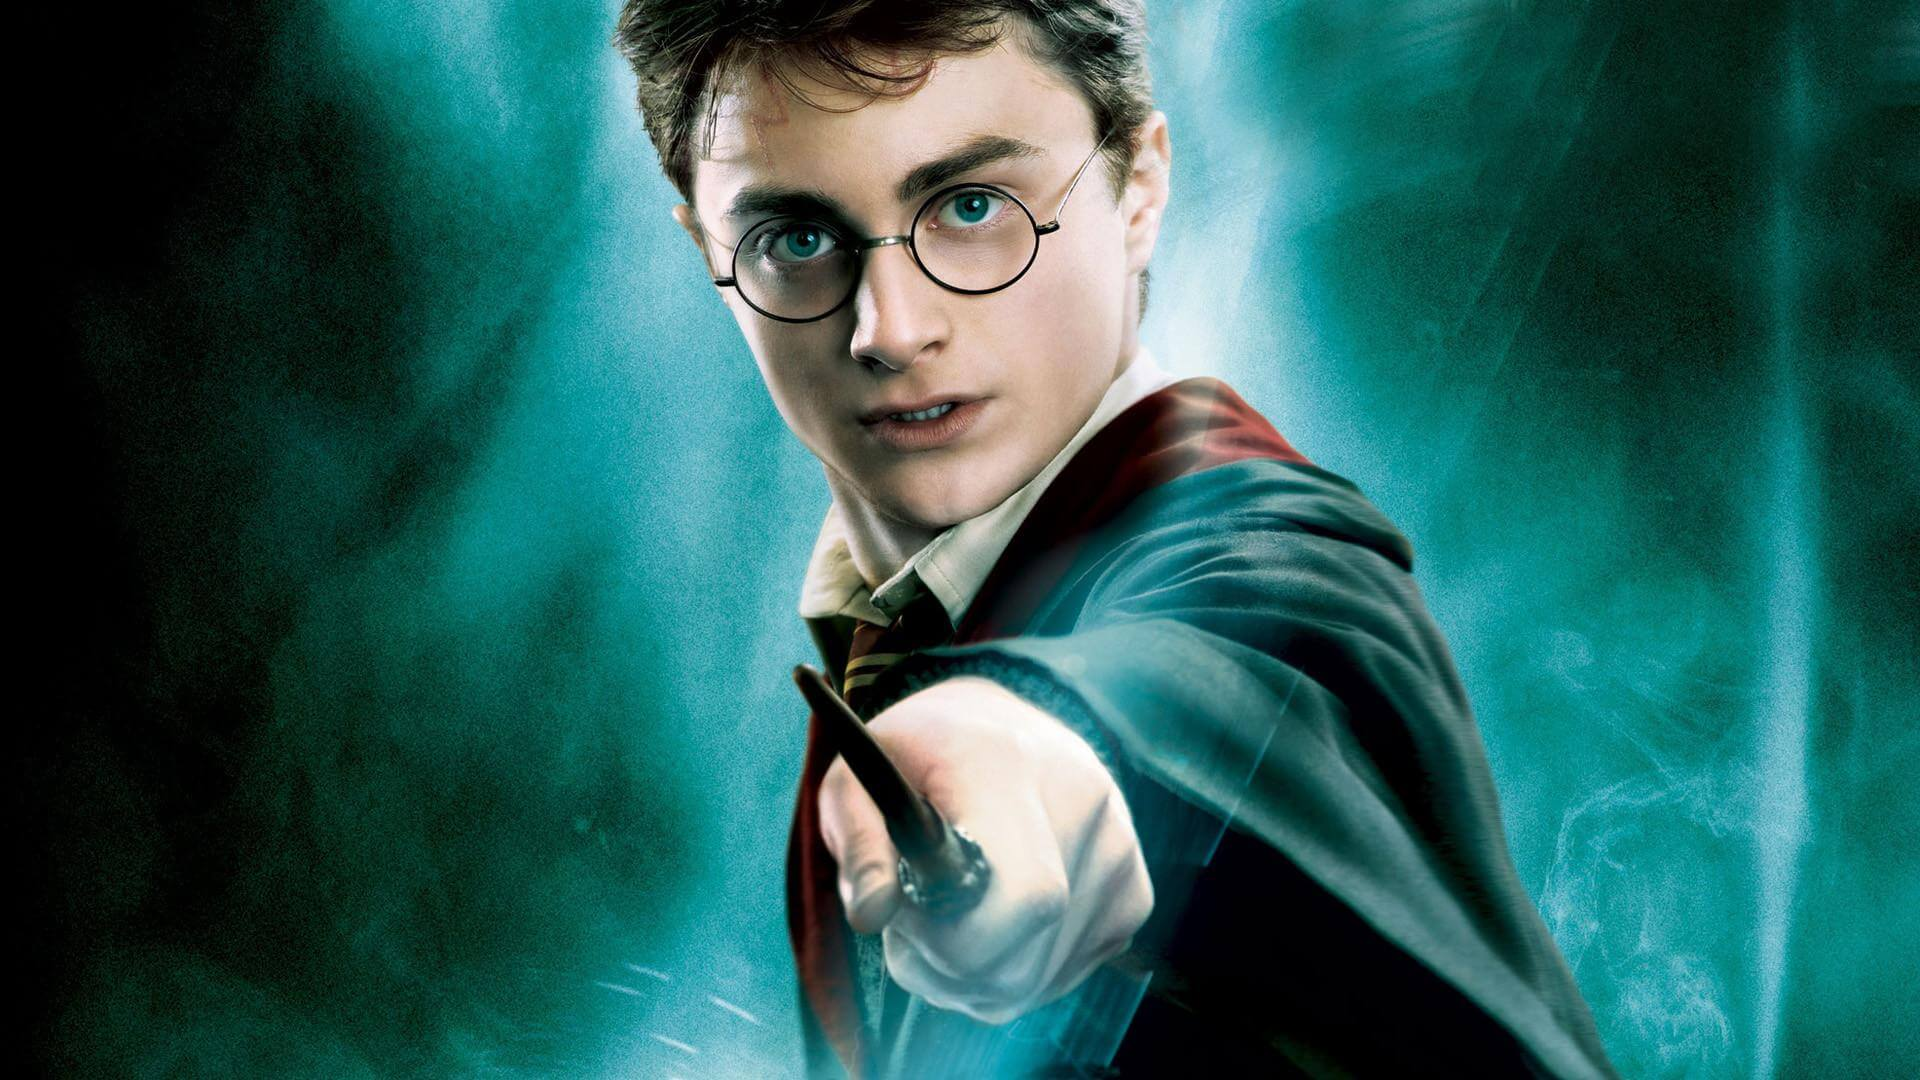 Handwritten Harry Potter Prequel Stolen